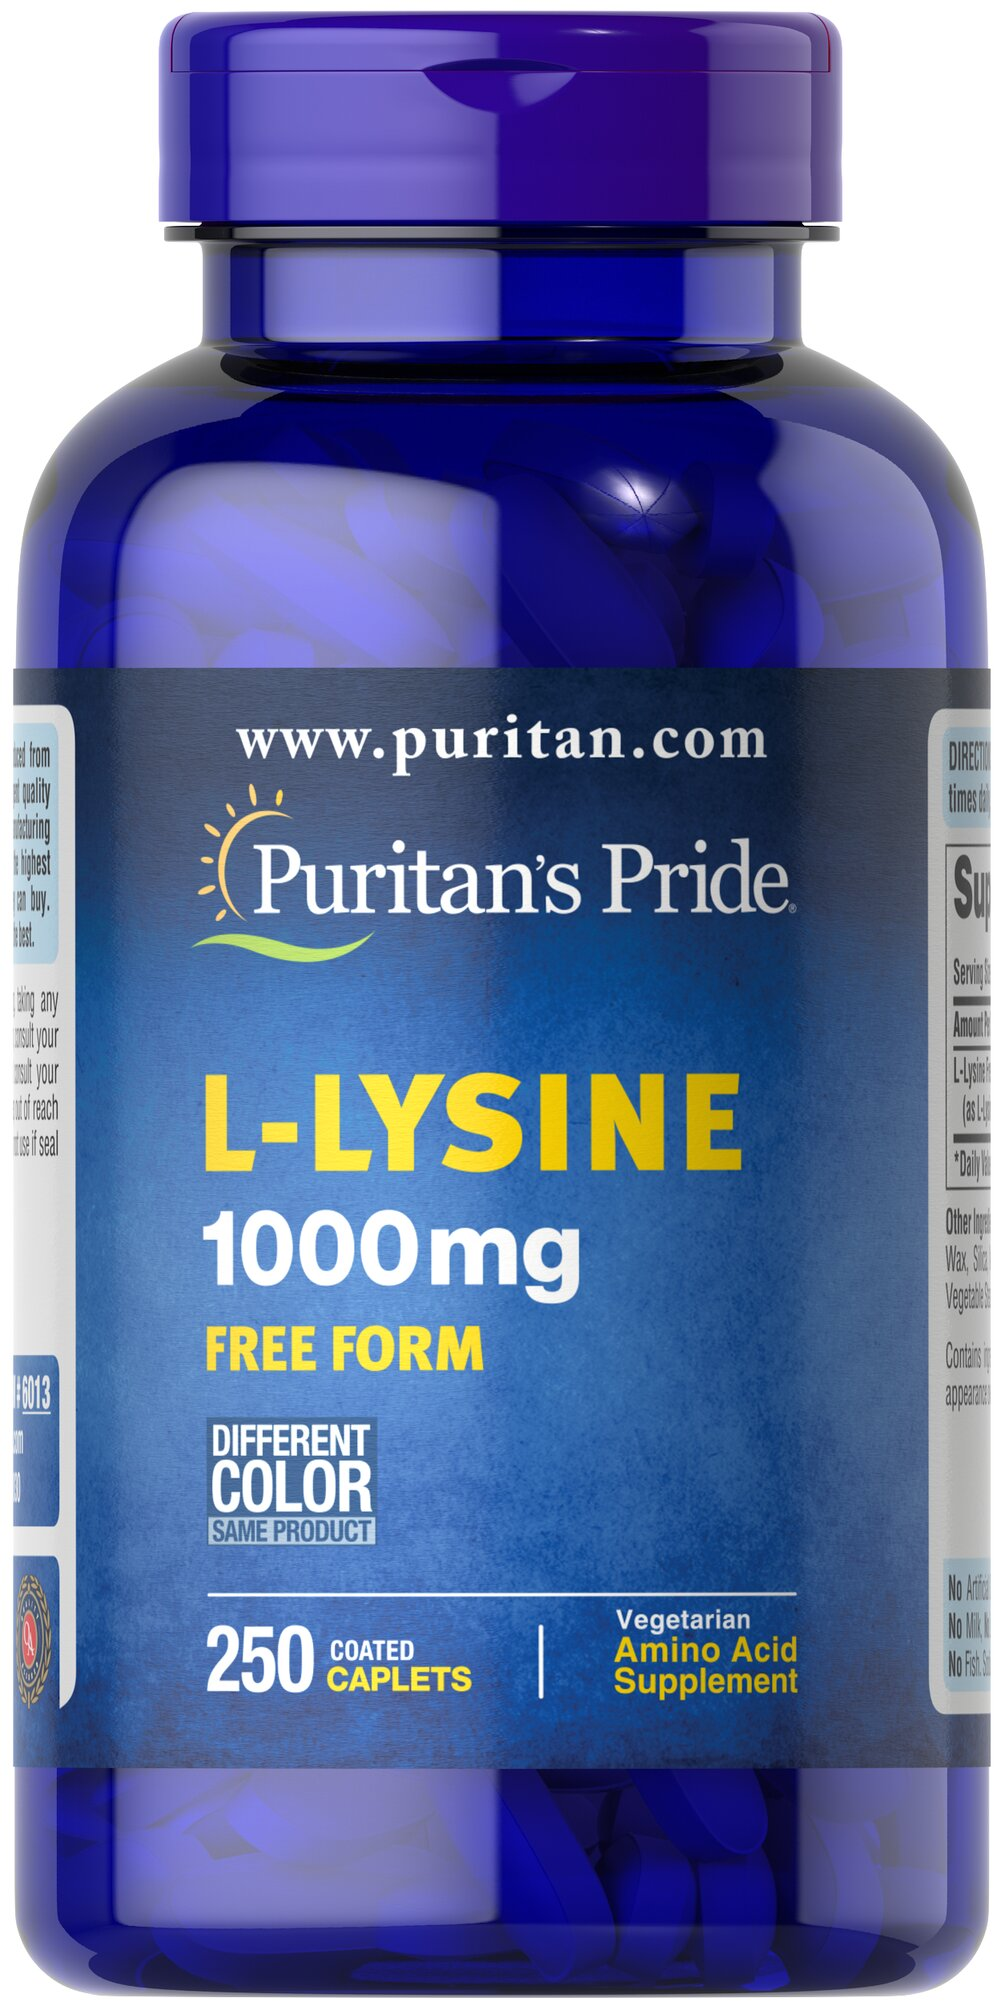 L-Lysine 1000 mg <p>For Balanced Nutrition and Health**</p><p>Lysine is an indispensable amino acid that cannot be made by the body.** Amino acids form the basis for protein, which helps construct and maintain the critical structures in the body.** Lysine is also used for the health and integrity of skin.**</p> 250 Tablets 1000 mg $27.99